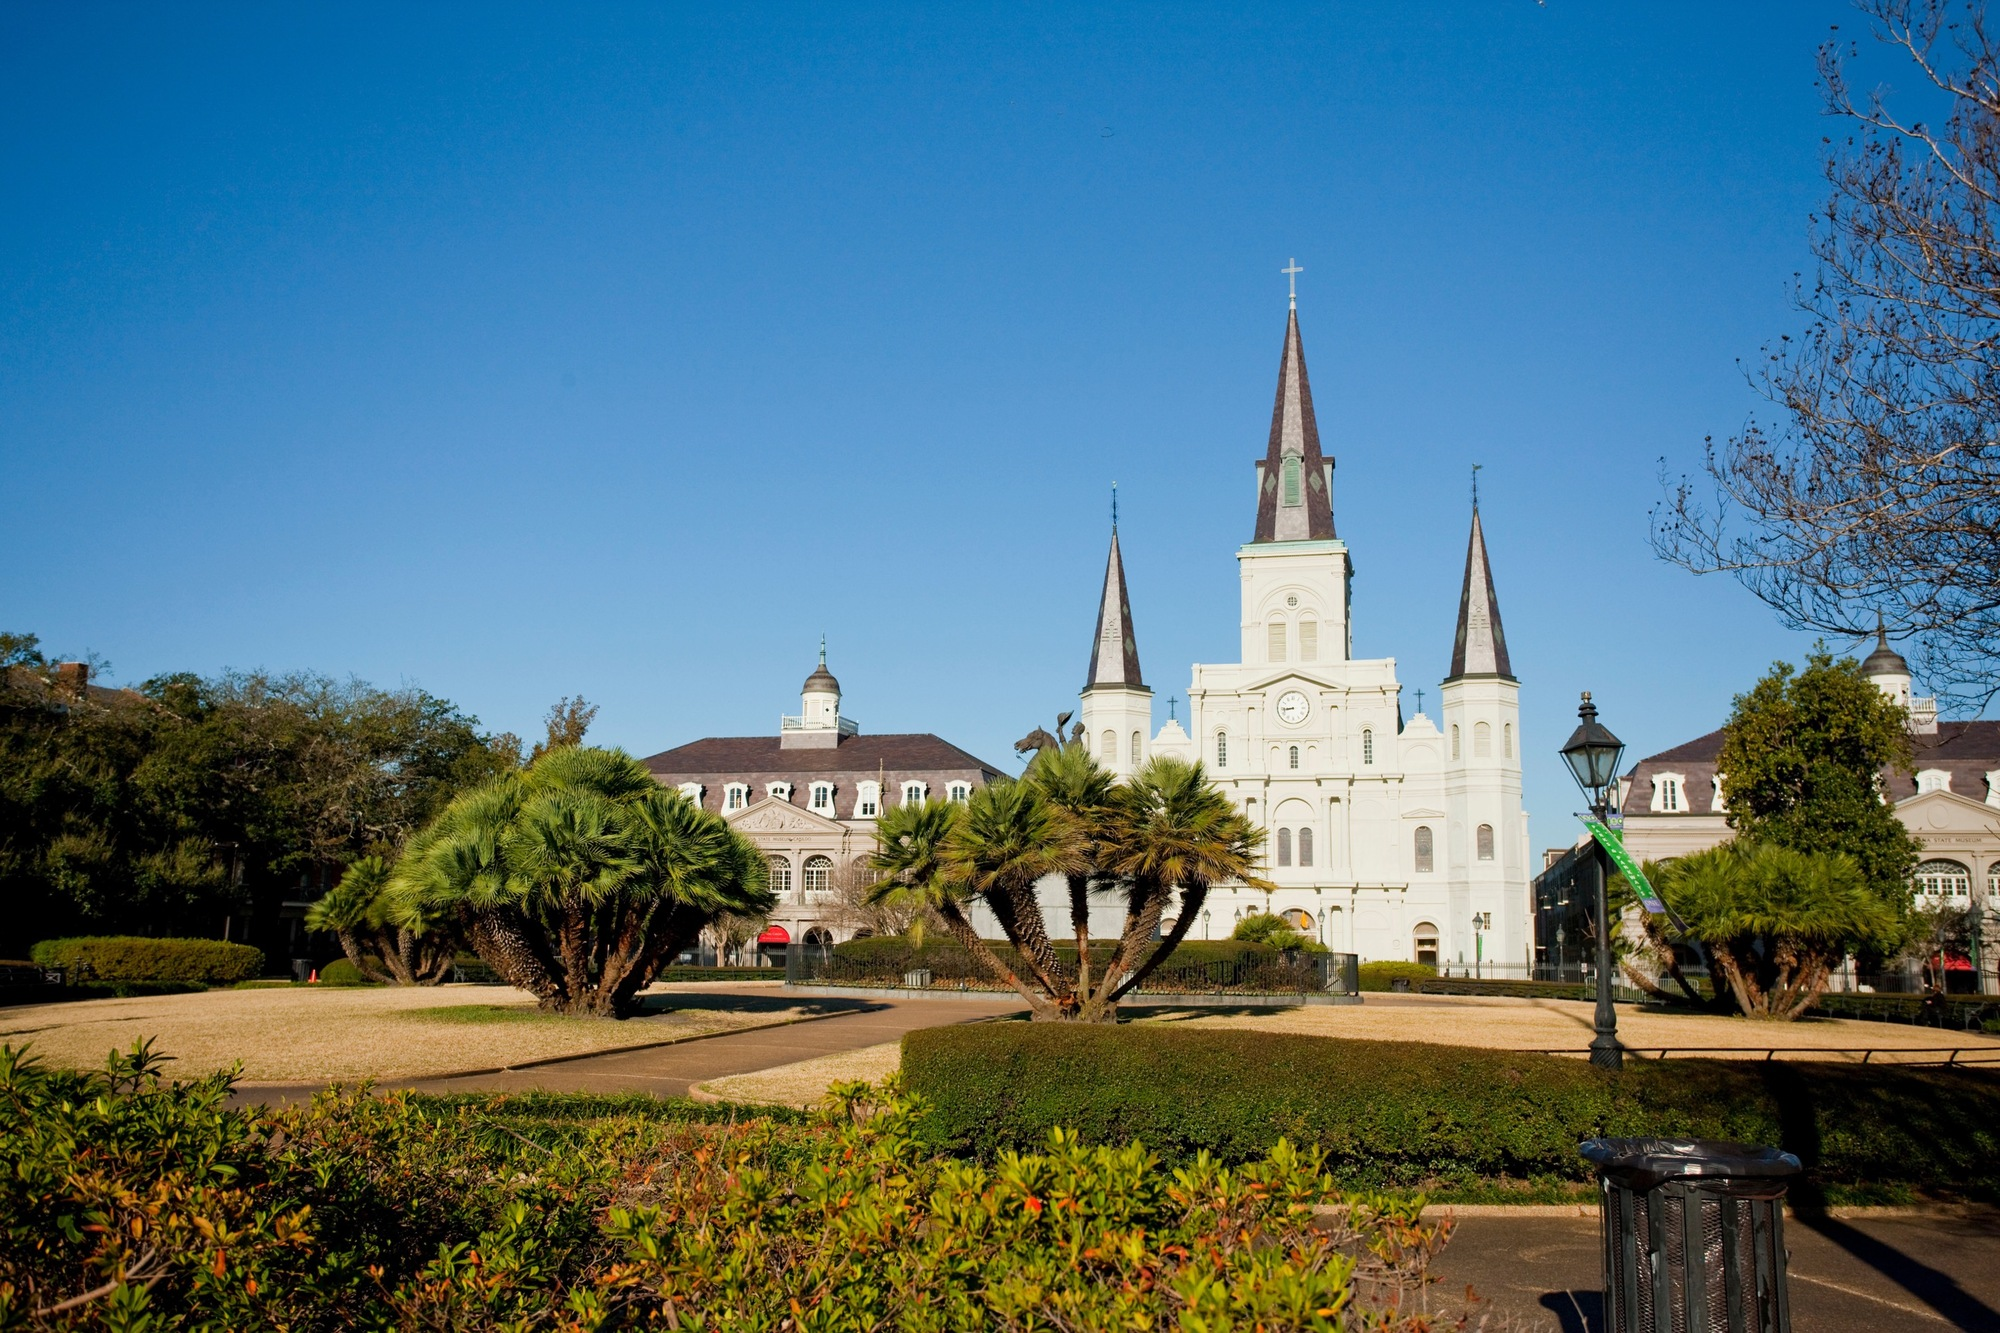 An architects guide to new orleans: 21 unmissable works of